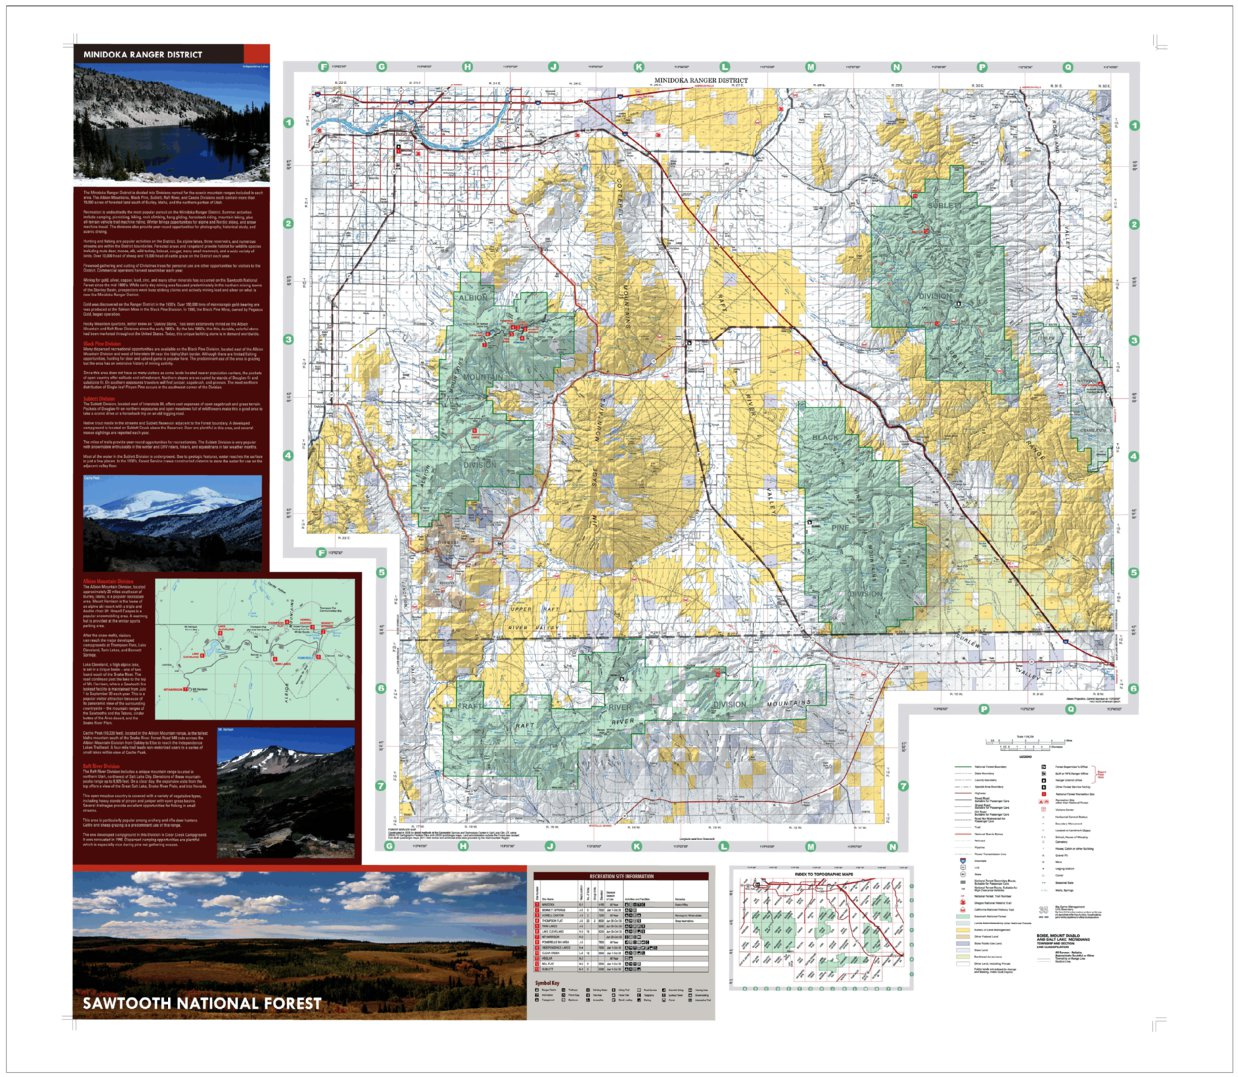 Sawtooth National Forest Minidoka Ranger District Forest ... on minnesota chippewa national forest map, salmon-challis national forest map, city of rocks national reserve map, denali national park and preserve map, caribou national forest map, deerlodge national forest map, gallatin petrified forest map, idaho map, lewis and clark national forest map, mt. baker national forest map, bering land bridge national preserve map, butte valley national grassland map, gallatin national forest map, cache national forest map, custer national forest map, sawtooth range idaho, sawtooth wilderness, green mountain national forest map, cda national forest map, magic valley mall map,